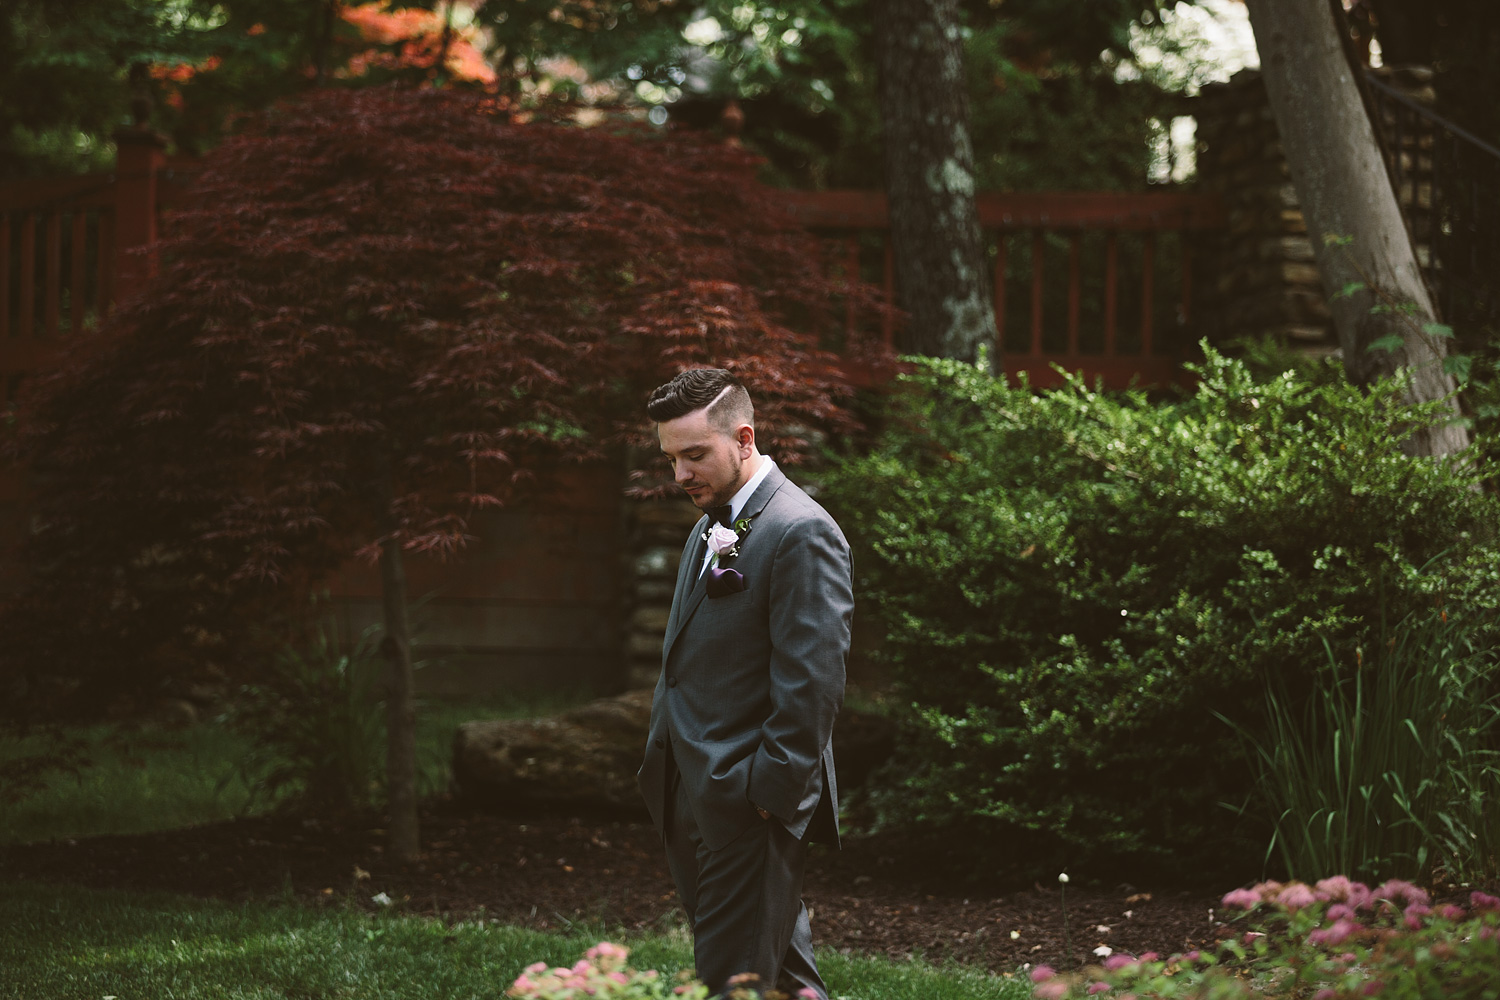 loudonville-ohio-wedding-photographers-landolls-mochican-castle_54.jpg